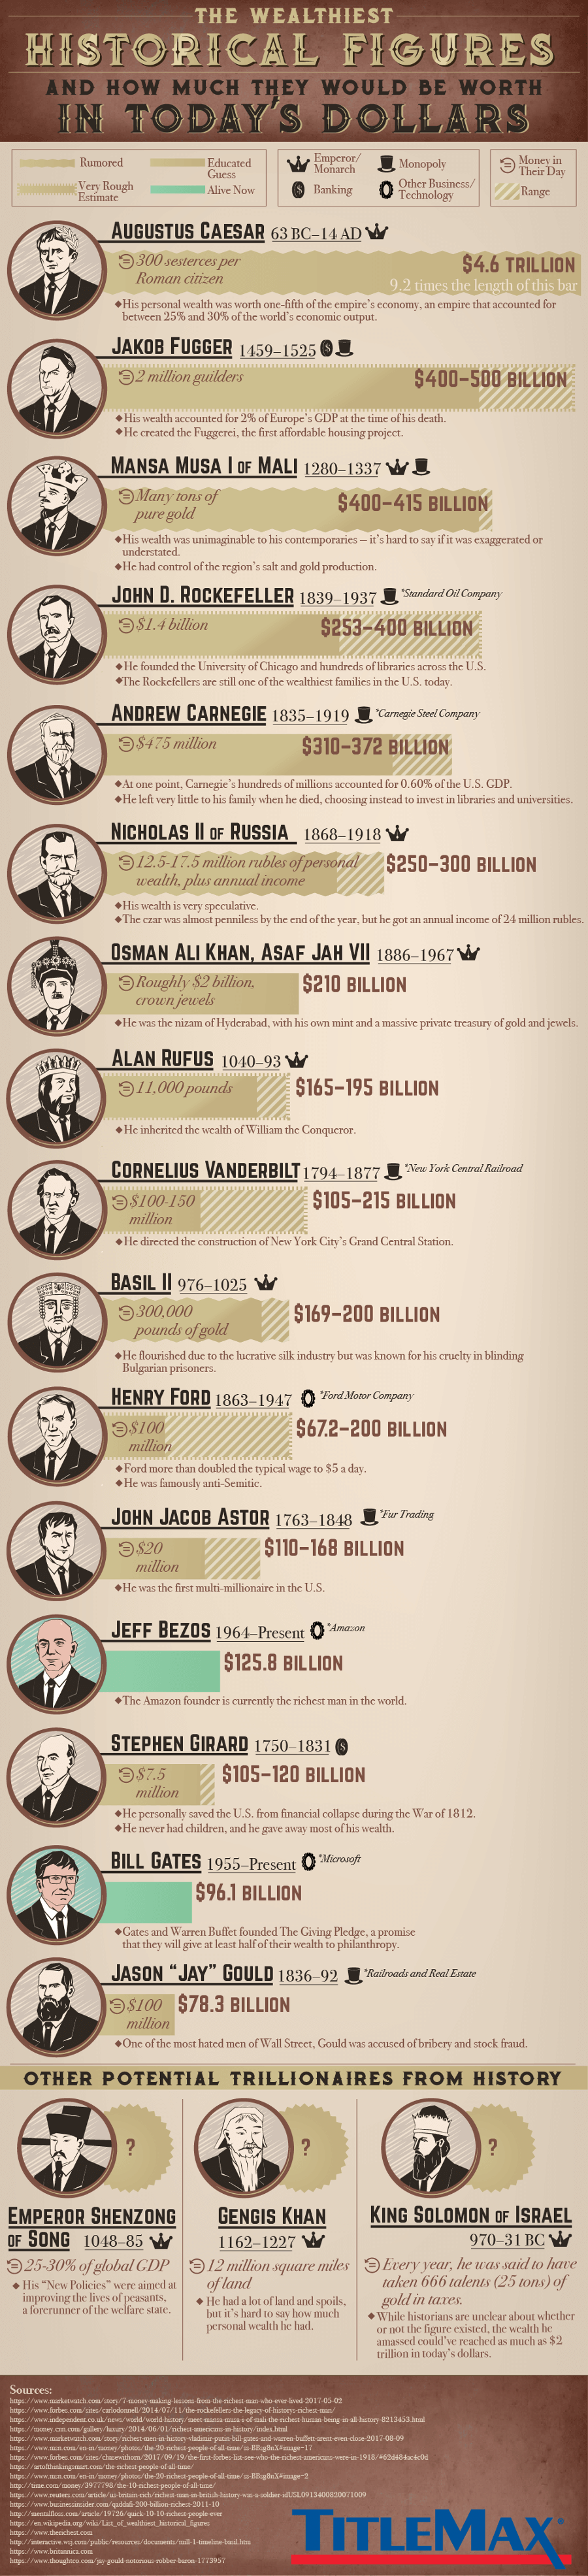 History's Wealthiest & How Much They Would Be Worth Today